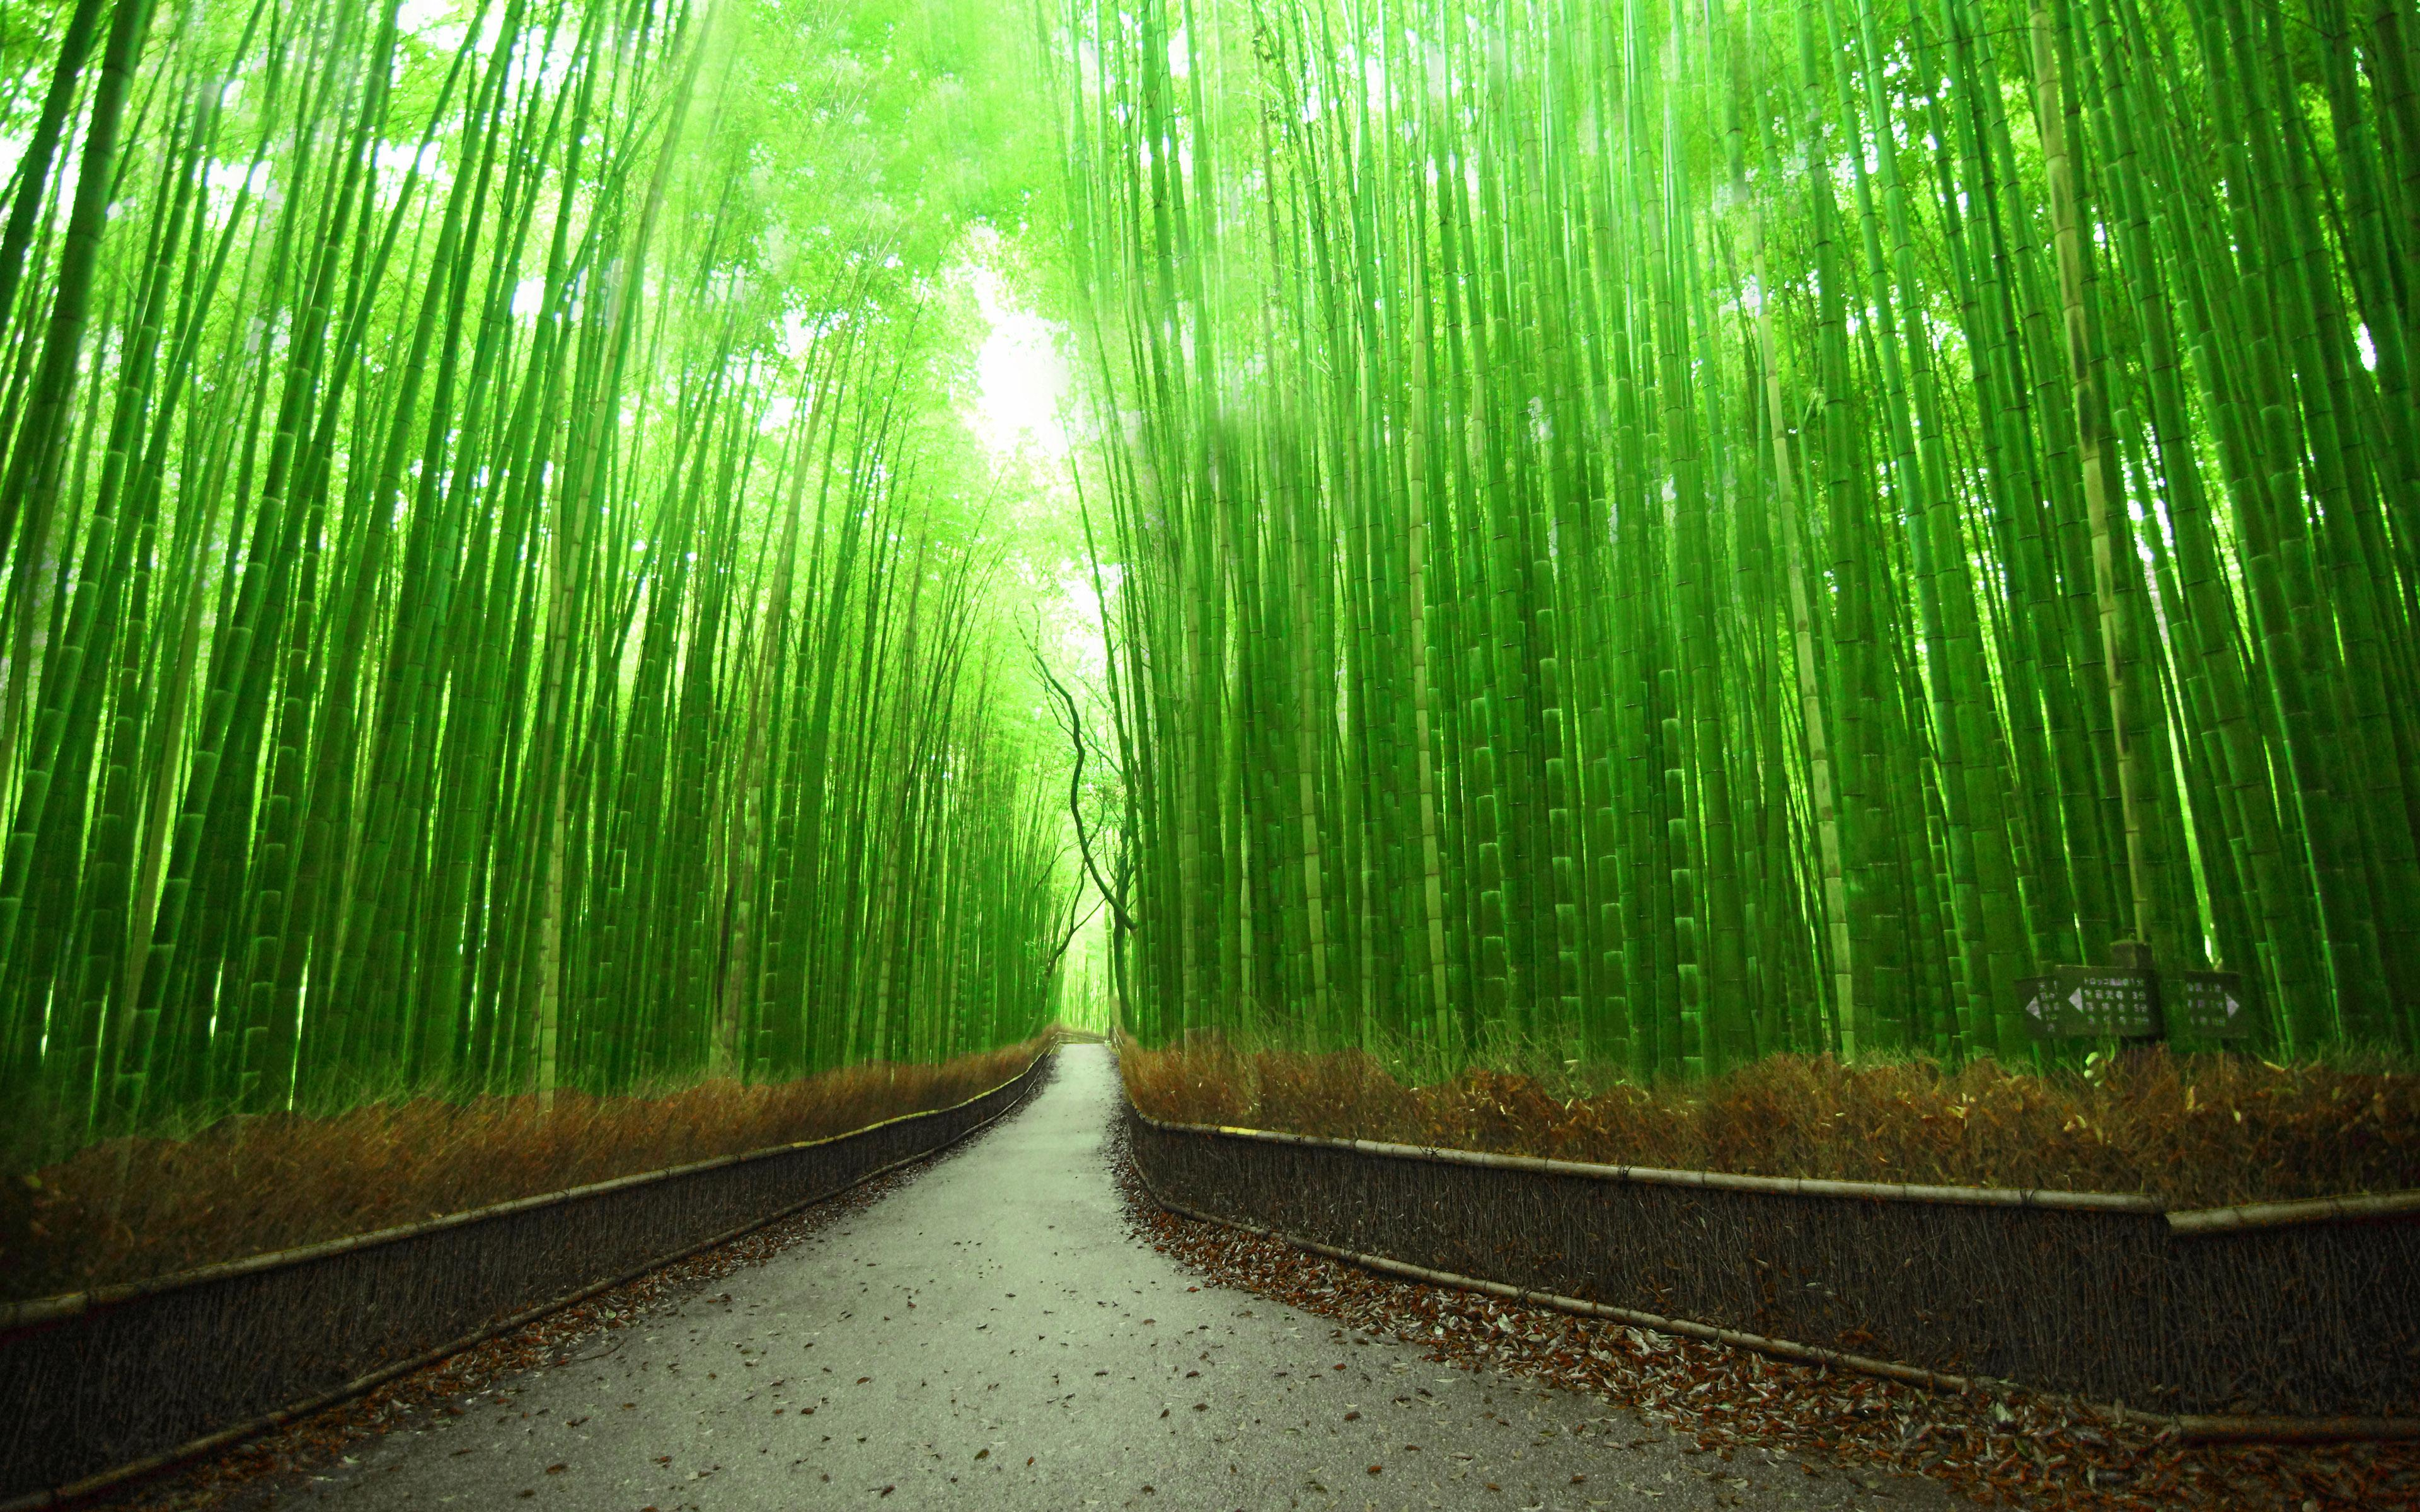 Bamboo Forest Wallpapers for Home